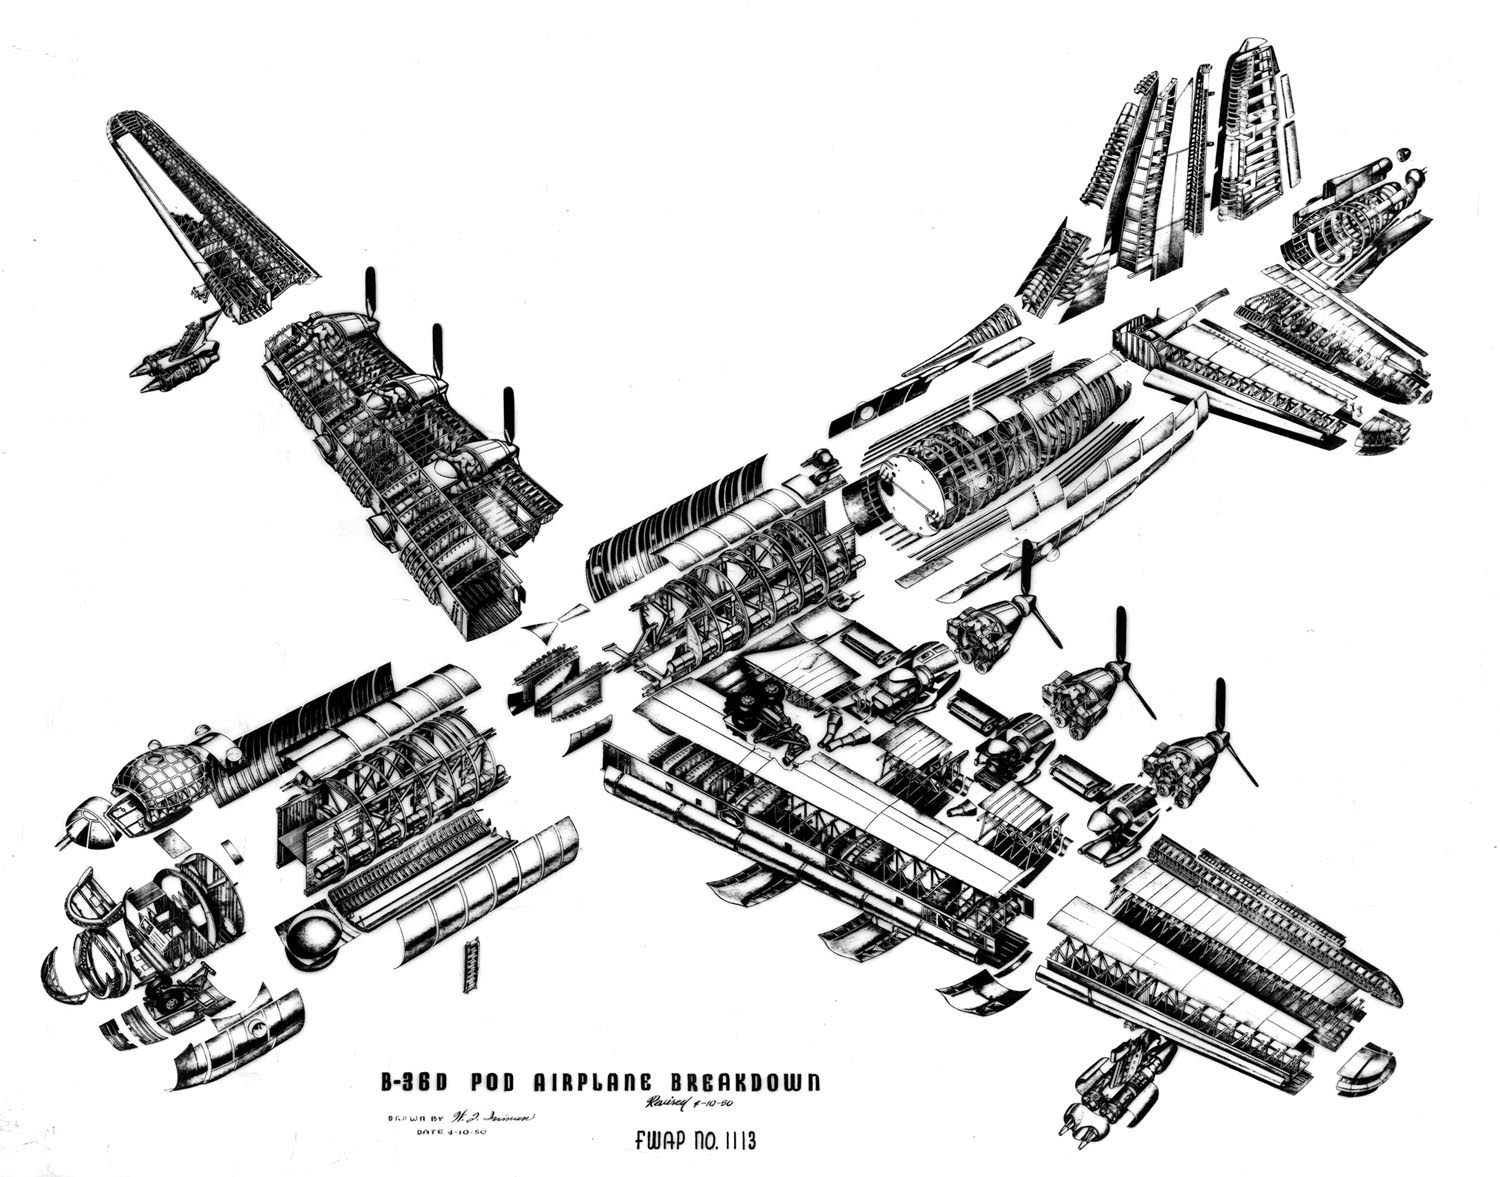 B-36D cross section showing interior